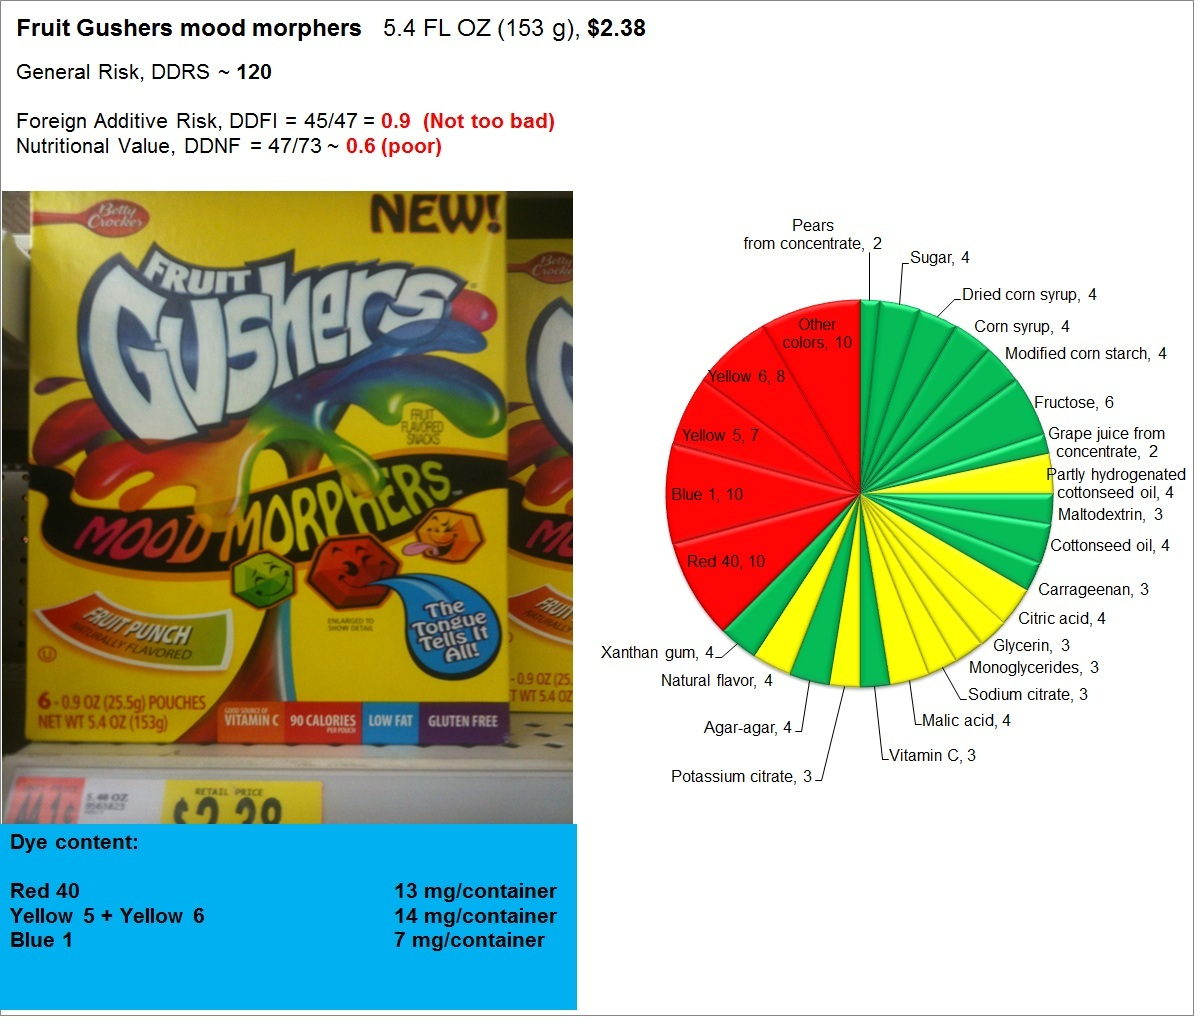 Fruit Gushers: Risk, Nutrition and Dye Content